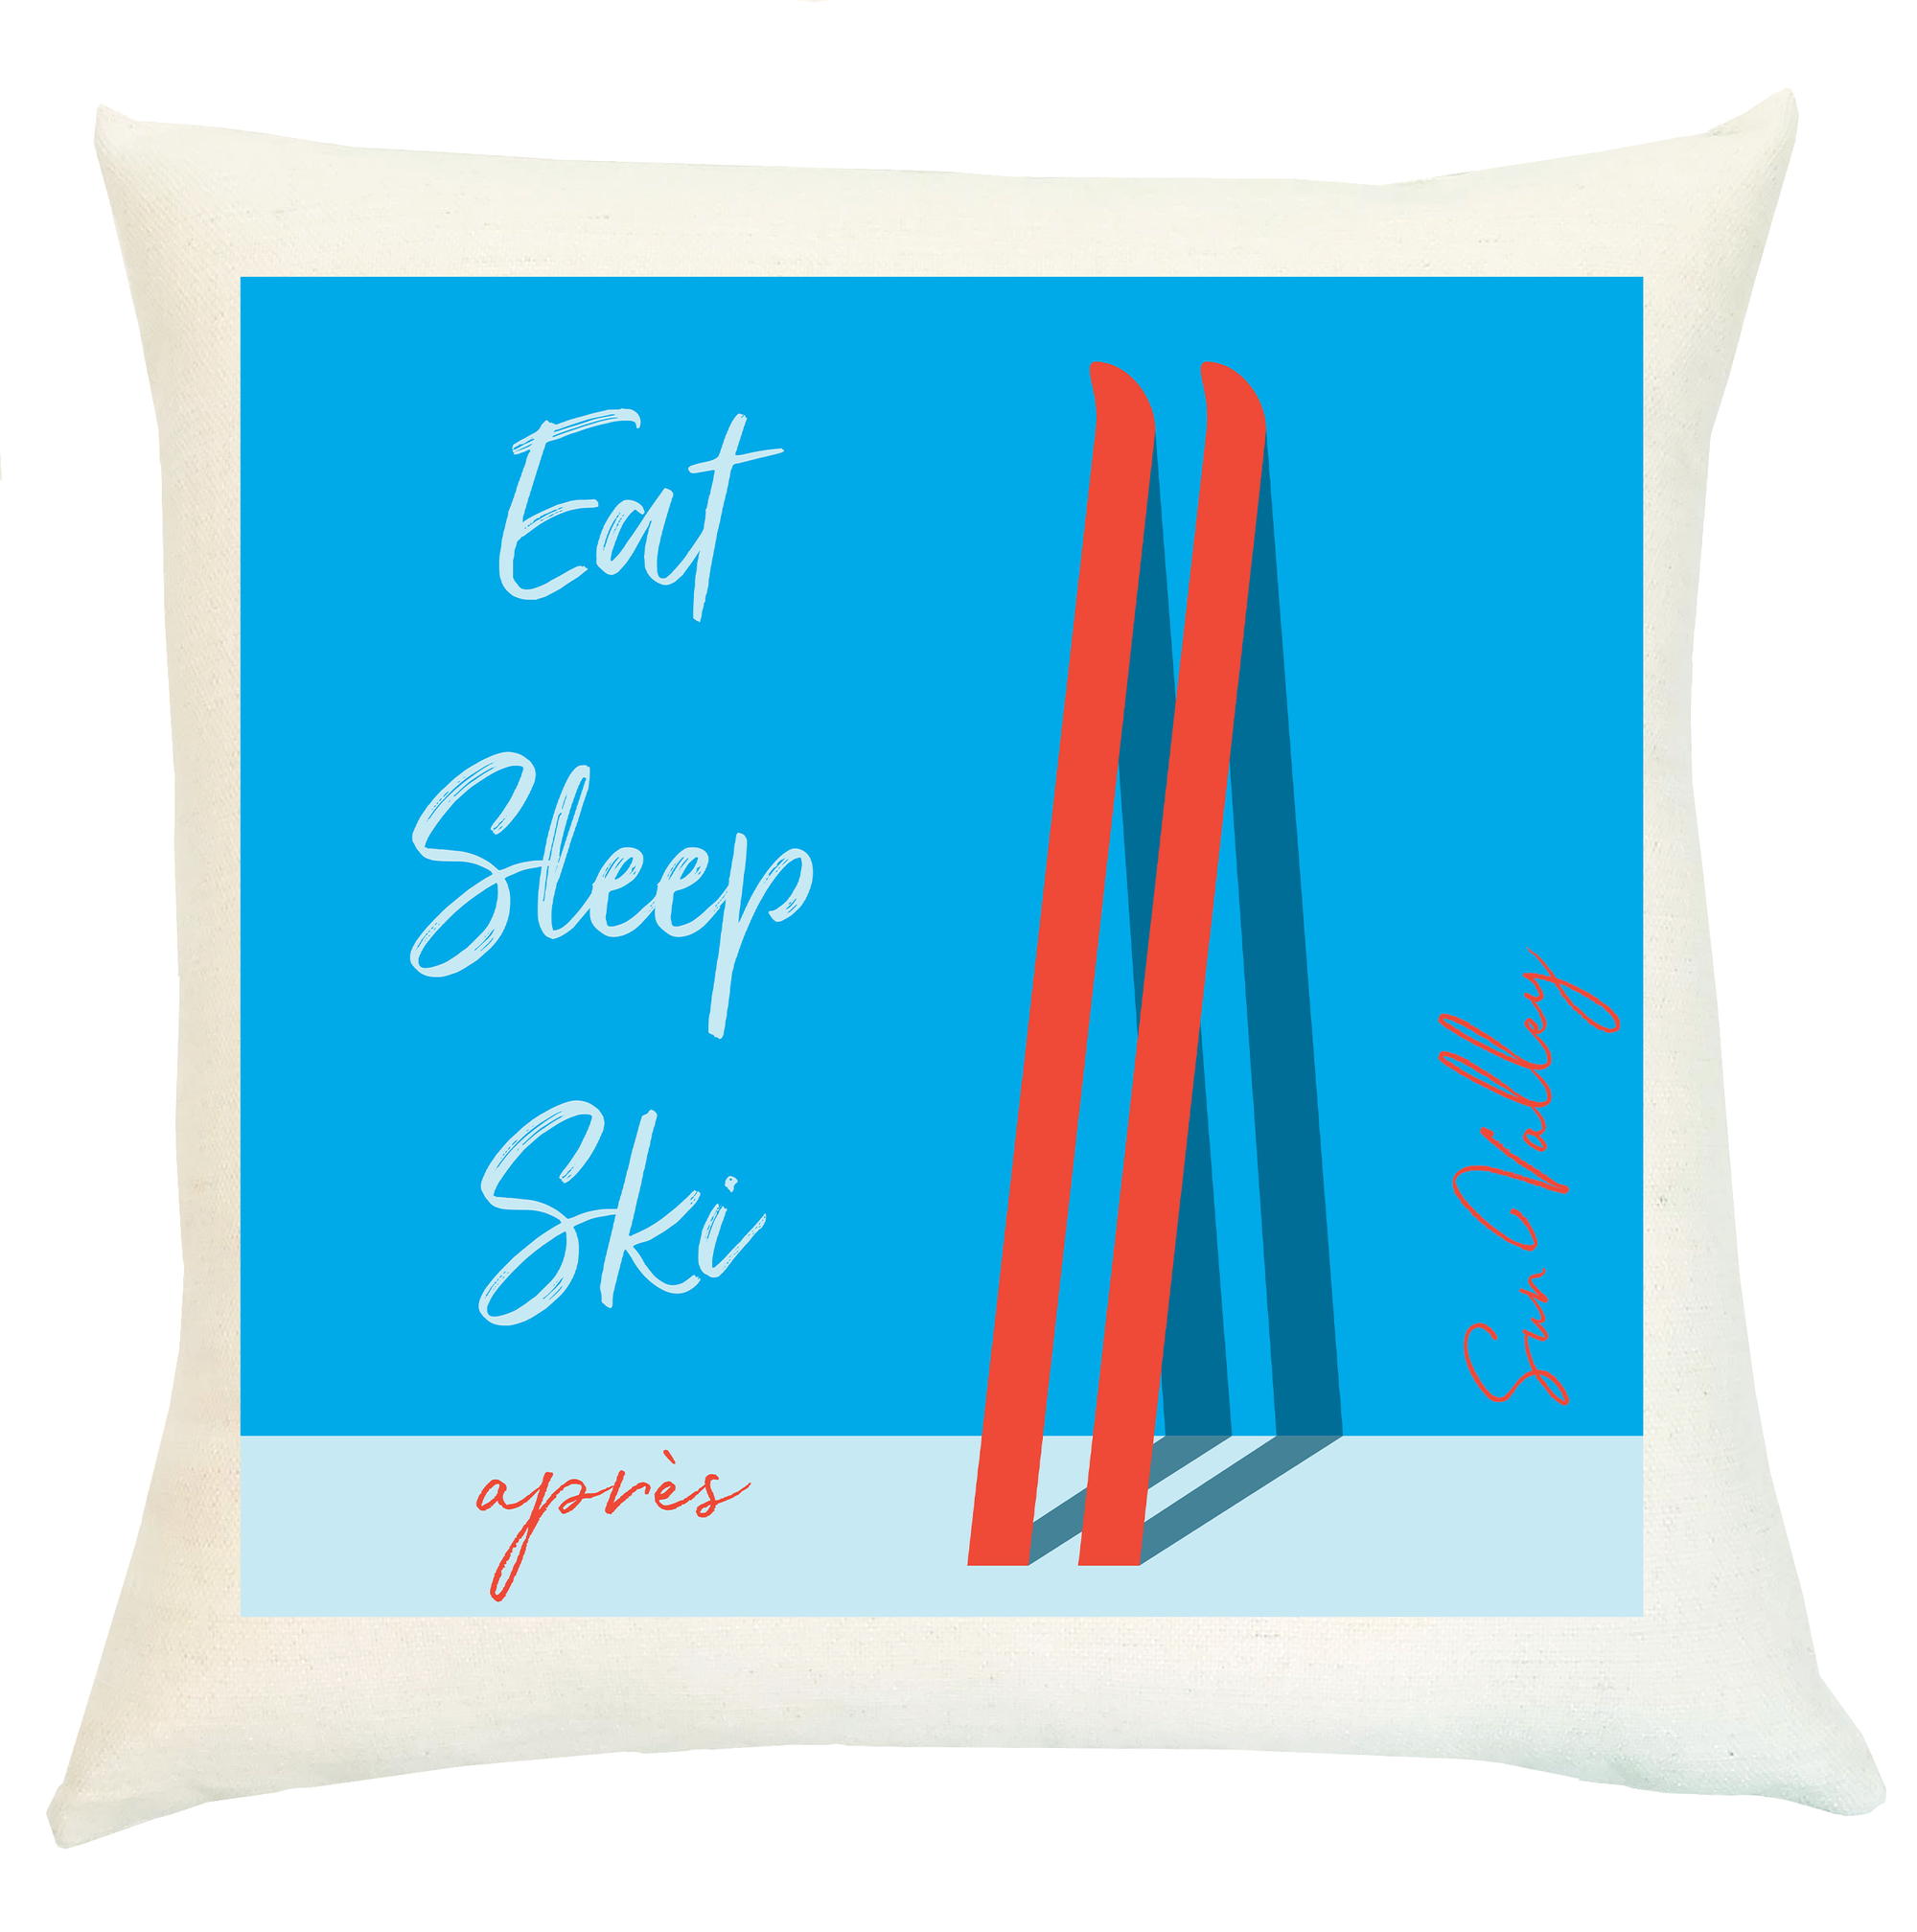 Pillow Personalized - Eat Sleep Ski Apres with Family Name or Location